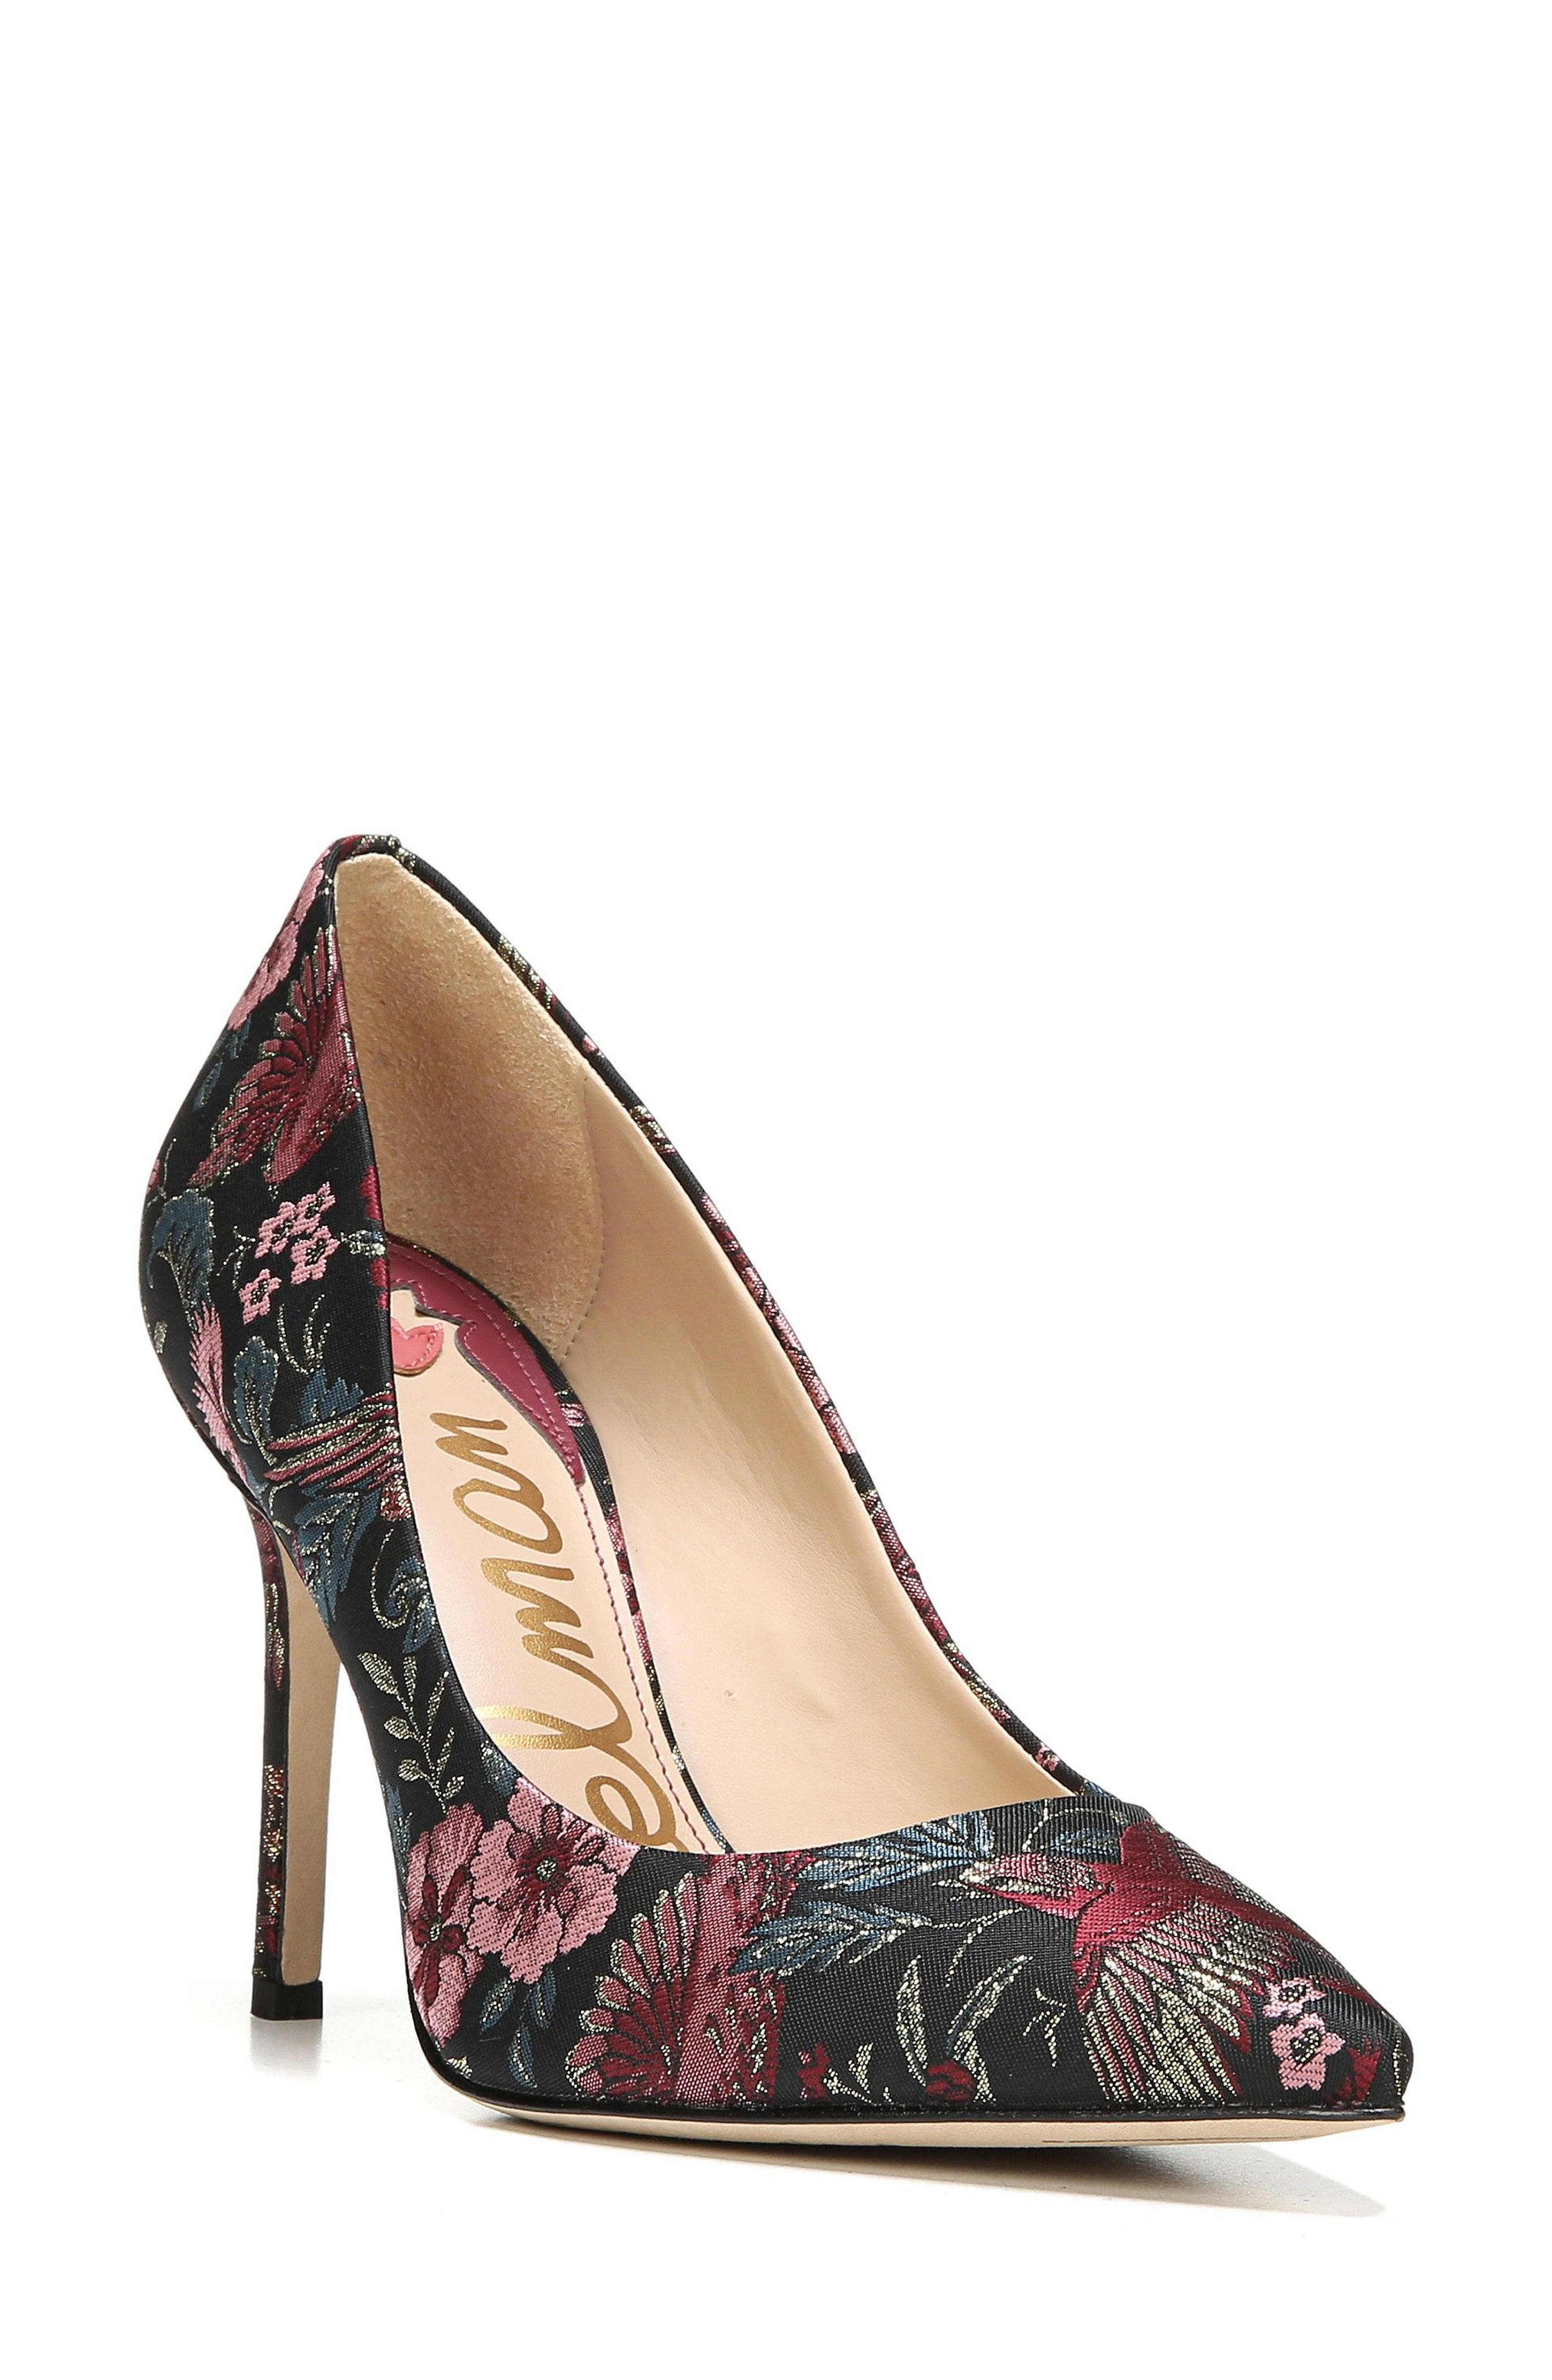 Main Image - Sam Edelman Hazel Pump (Women)